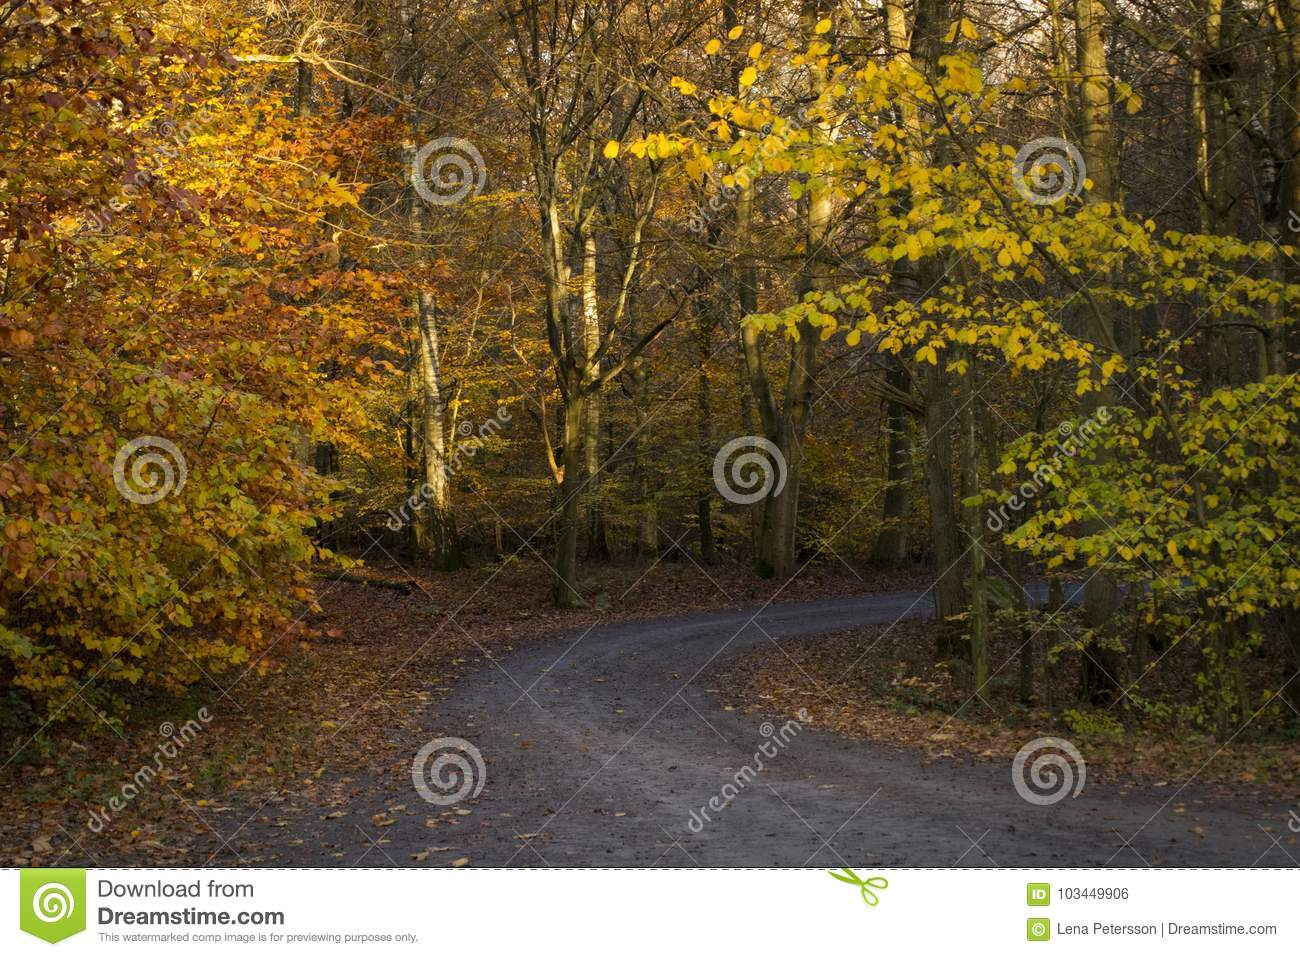 Download Road Trough The Autumn Forest Wallpaper Stock Photo